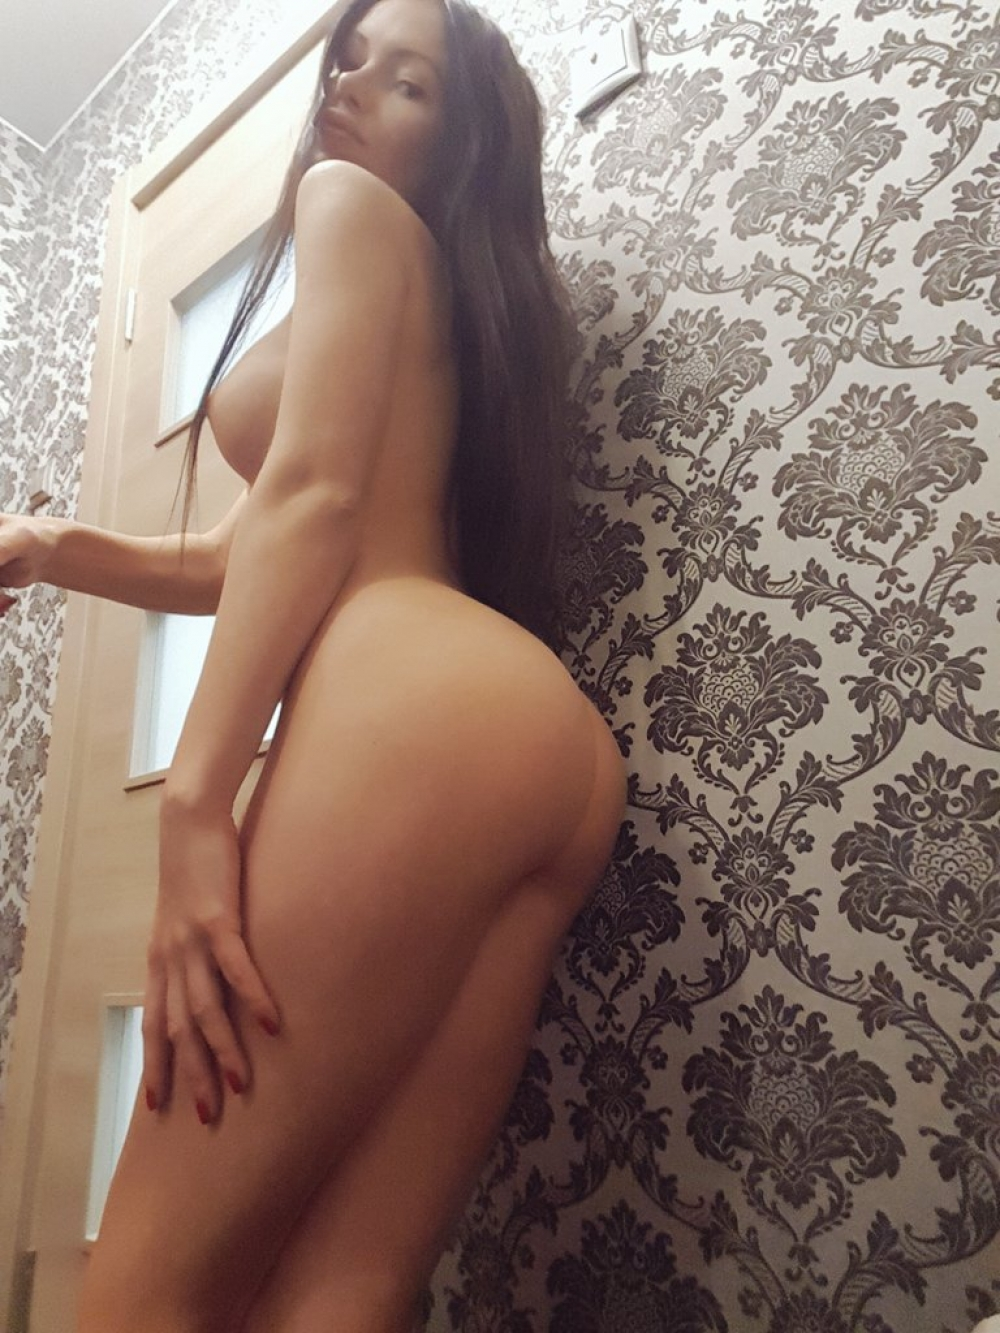 Russian girl natalia with beautiful ass